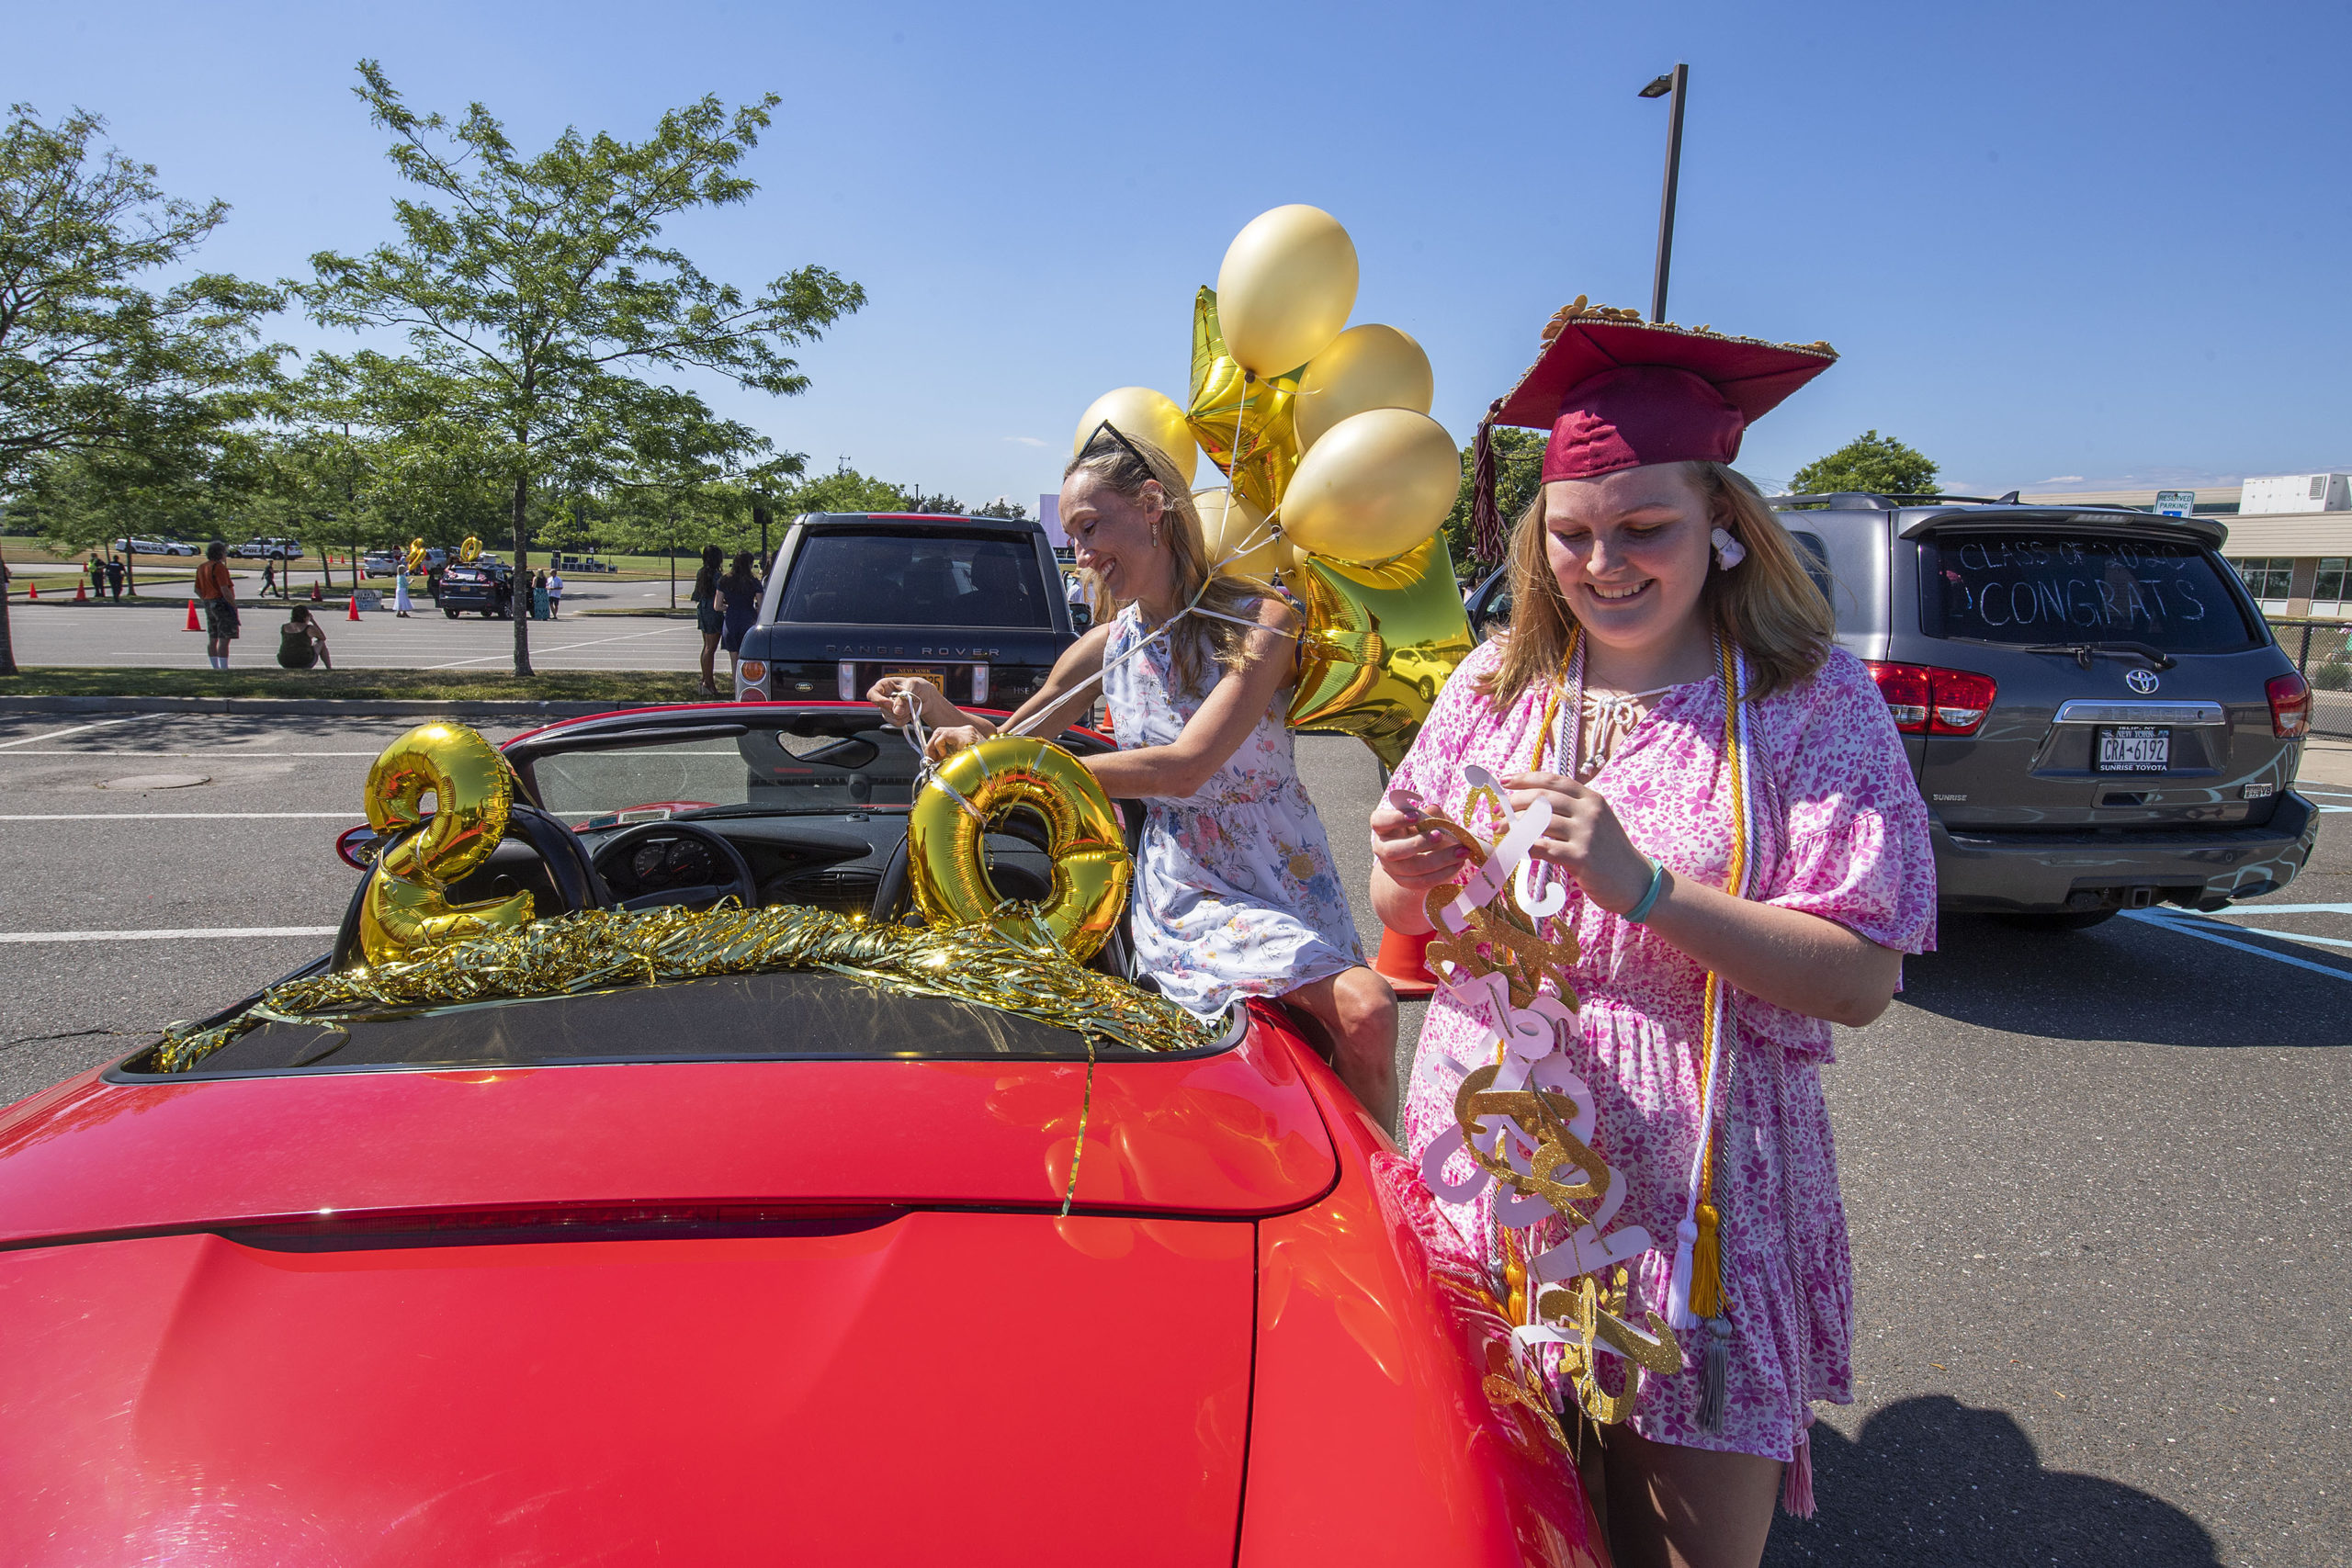 East Hampton High School Senior Remy Campbell helps her mom Aimee add decorations to her family's car as she gets ready to participate in the 2020 graduation ceremony at the East Hampton High School on Friday.